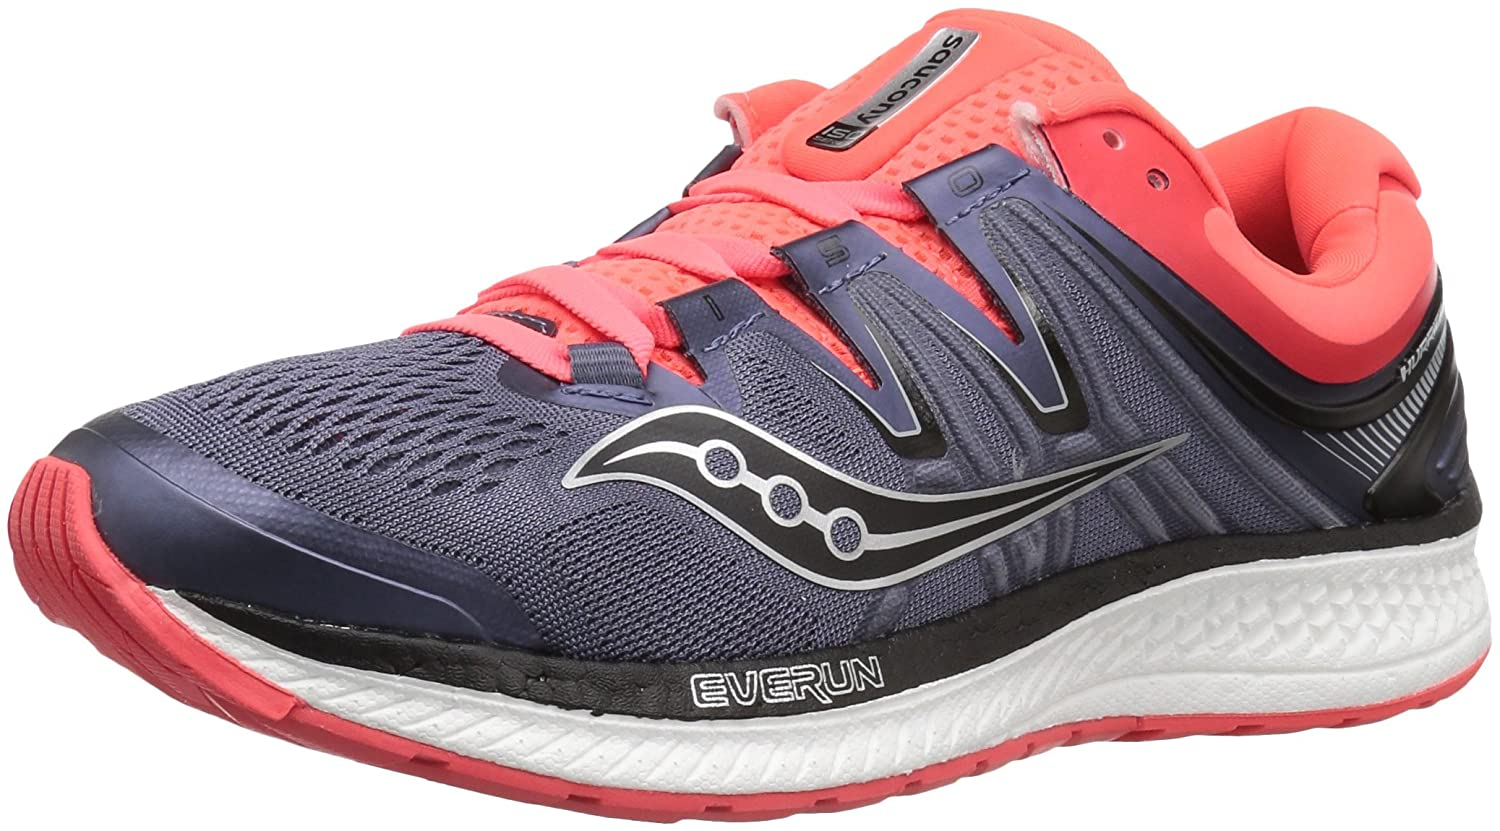 Saucony Women's Hurricane Iso 4 Running Shoe B072JTVND4 10.5 B(M) US|Grey/Black/Vizi Red